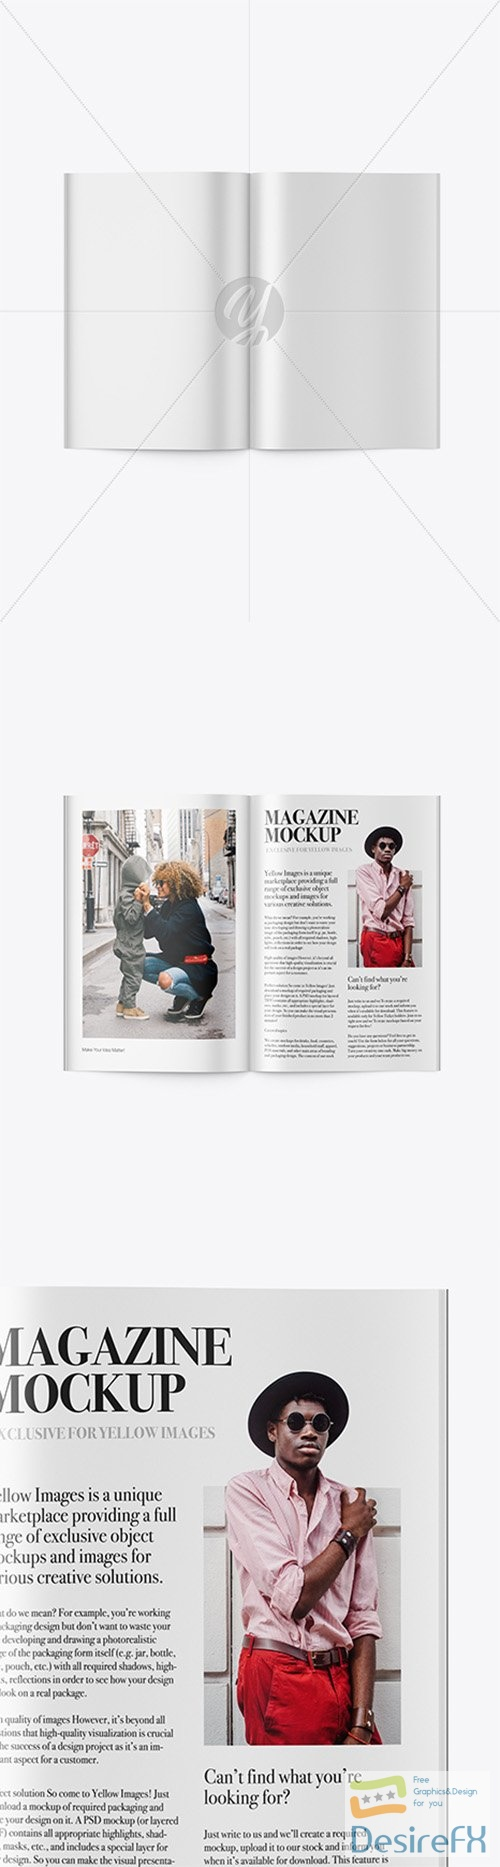 Opened Magazine Mockup - Top View 23446 TIF